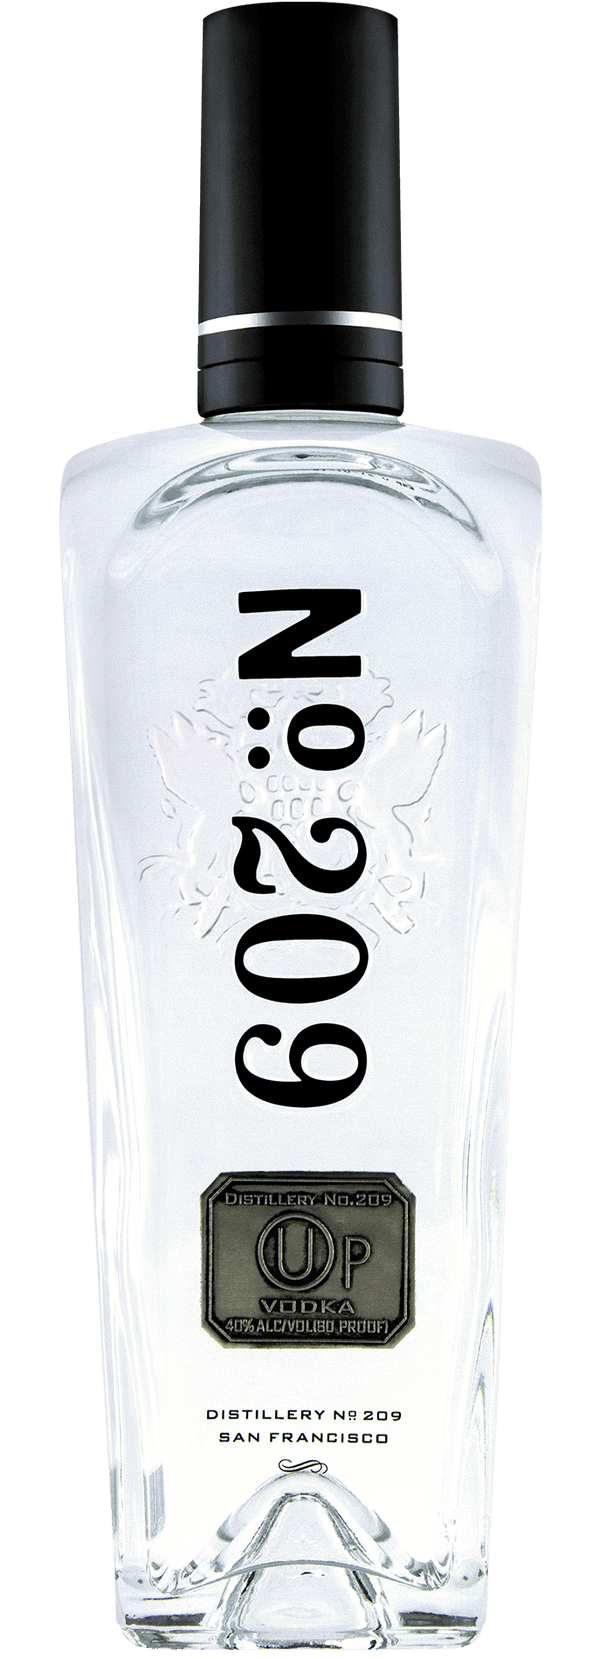 Distillery No. 209 Vodka Kosher 750ml